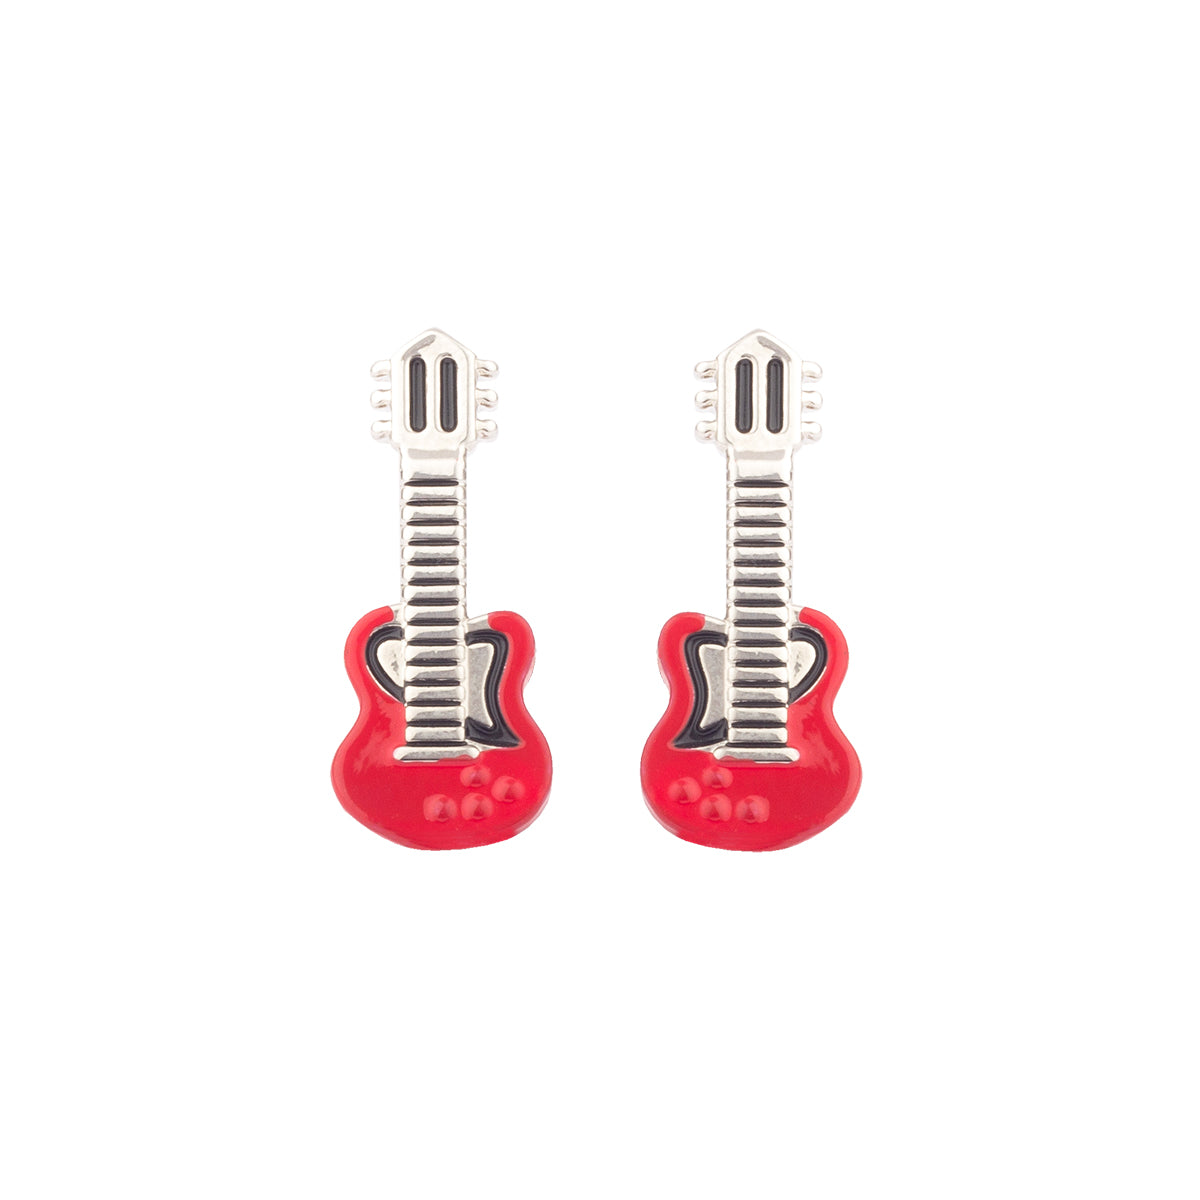 Let your taste of music trickle to your statement fashion choices! Get ready to rock in our raging red guitar cufflinks.